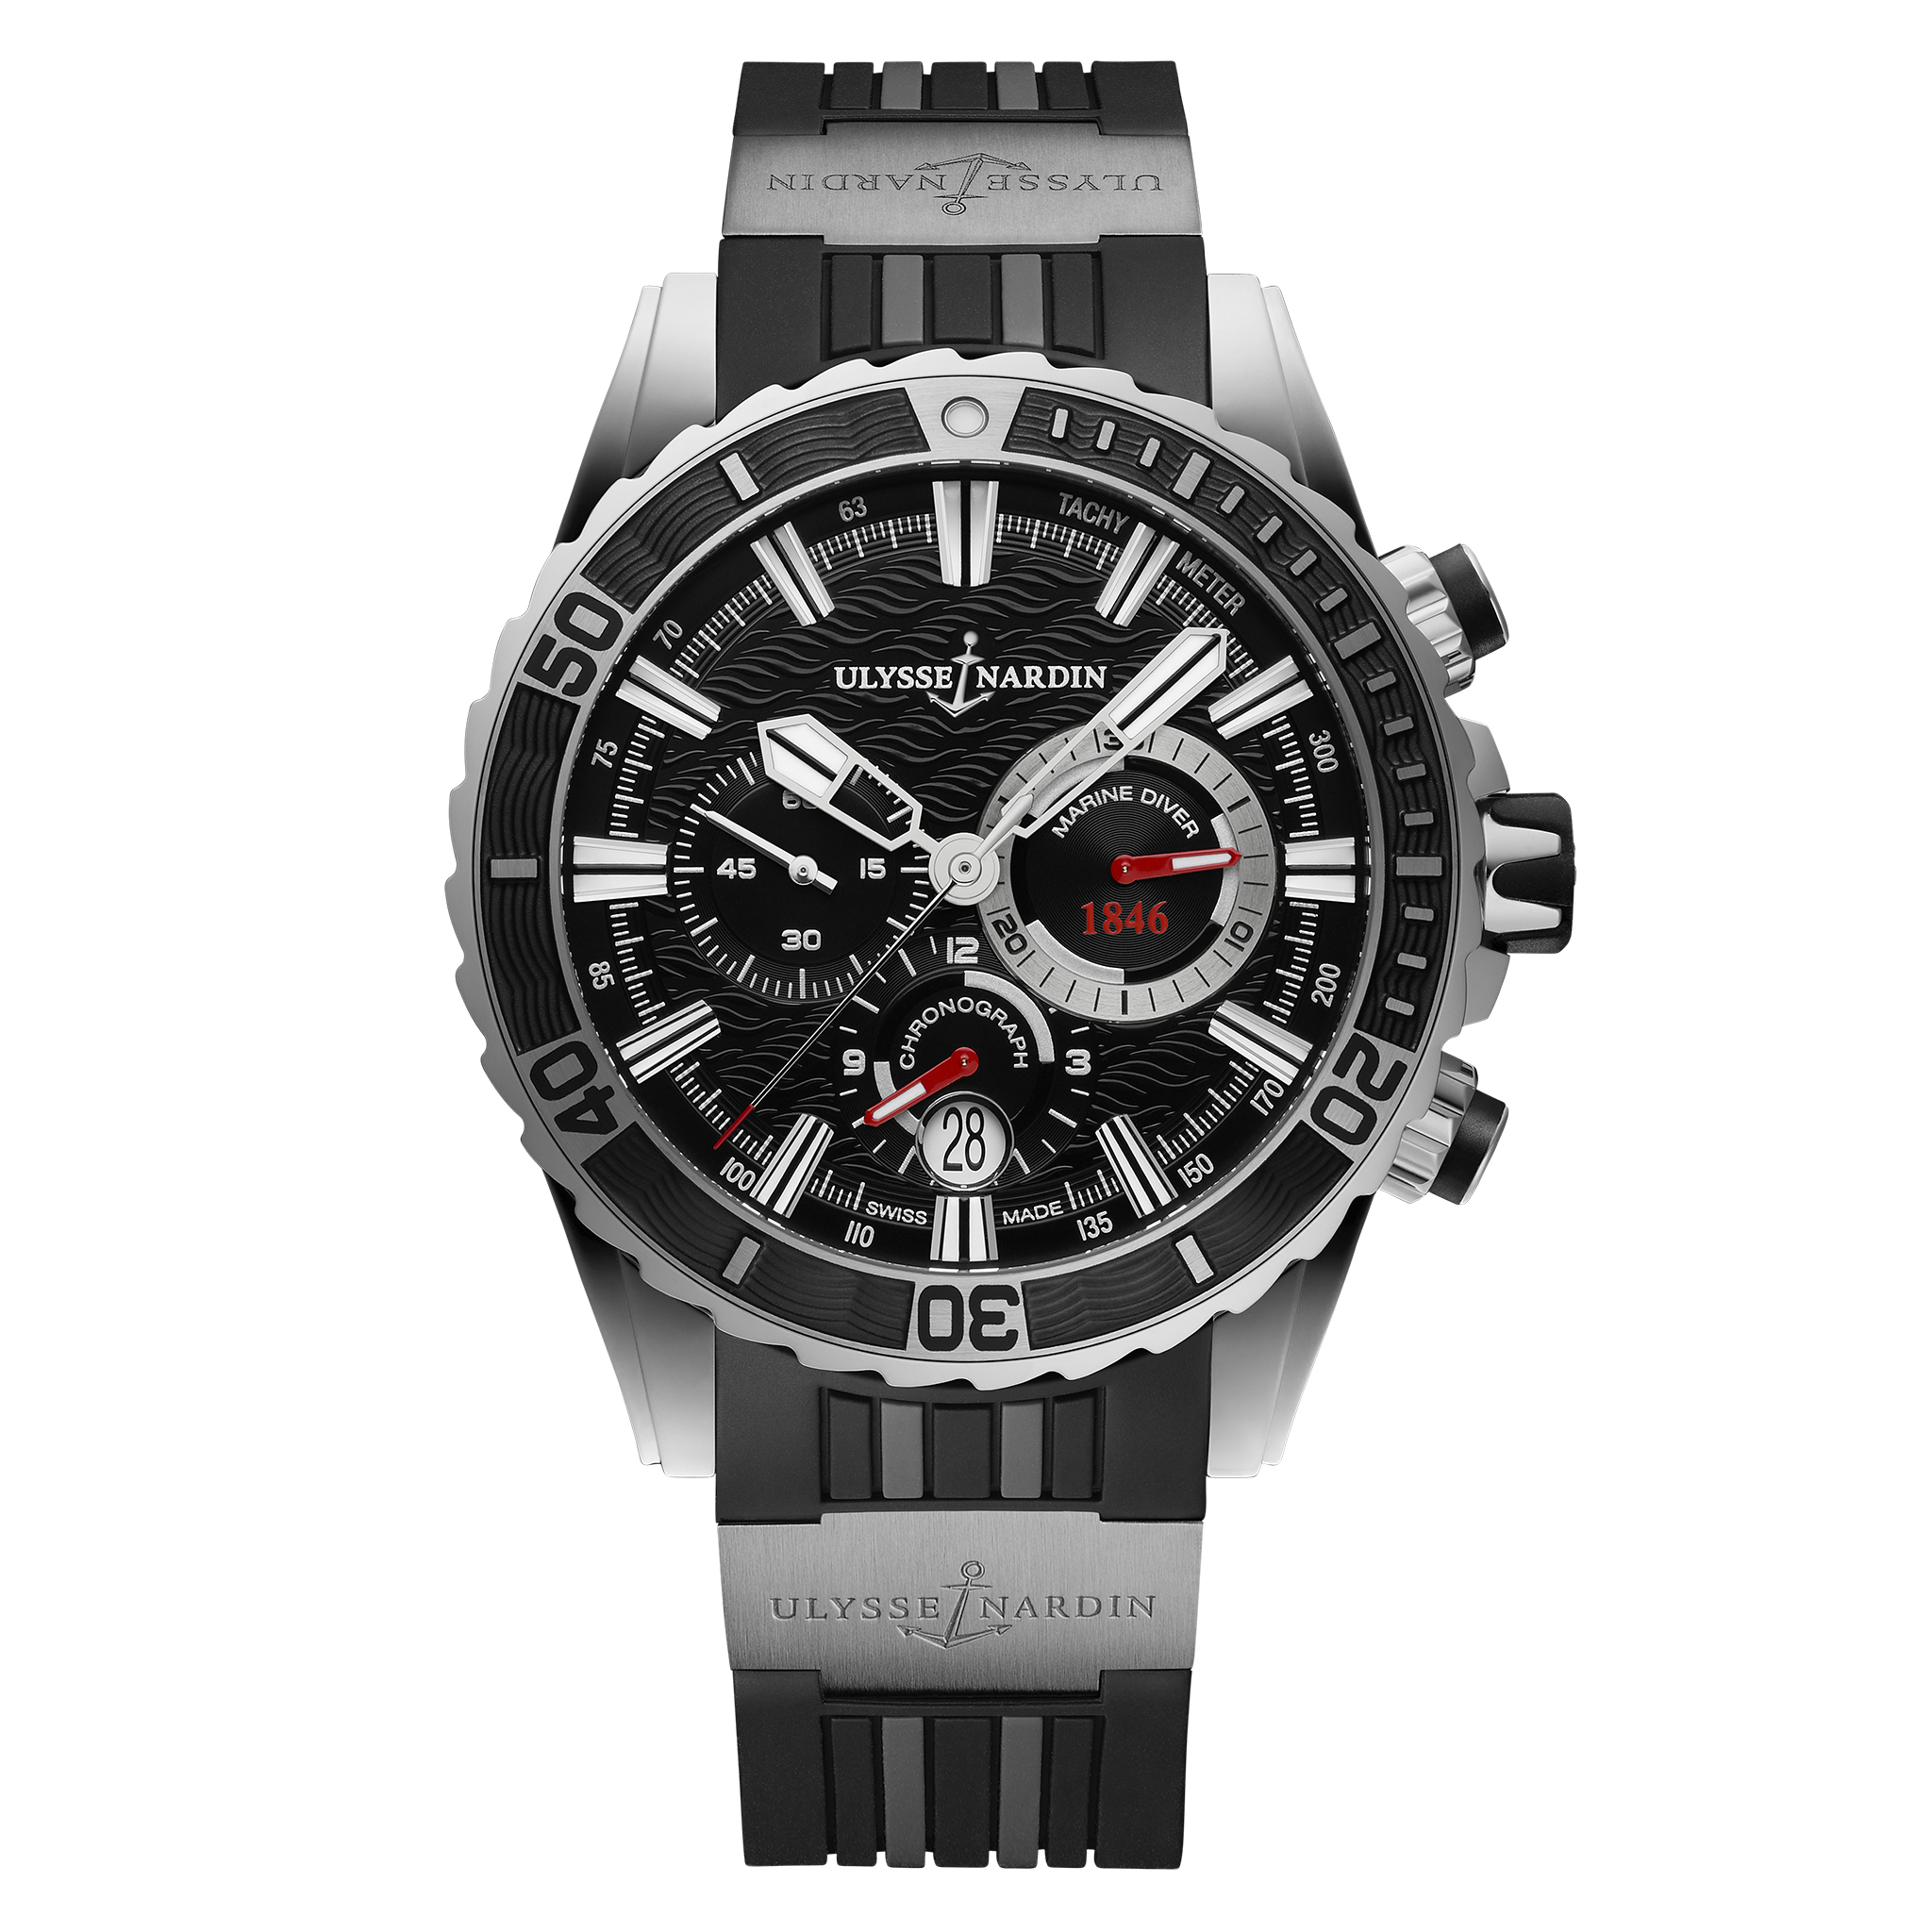 CHRONOGRAPH MANUFACTURE